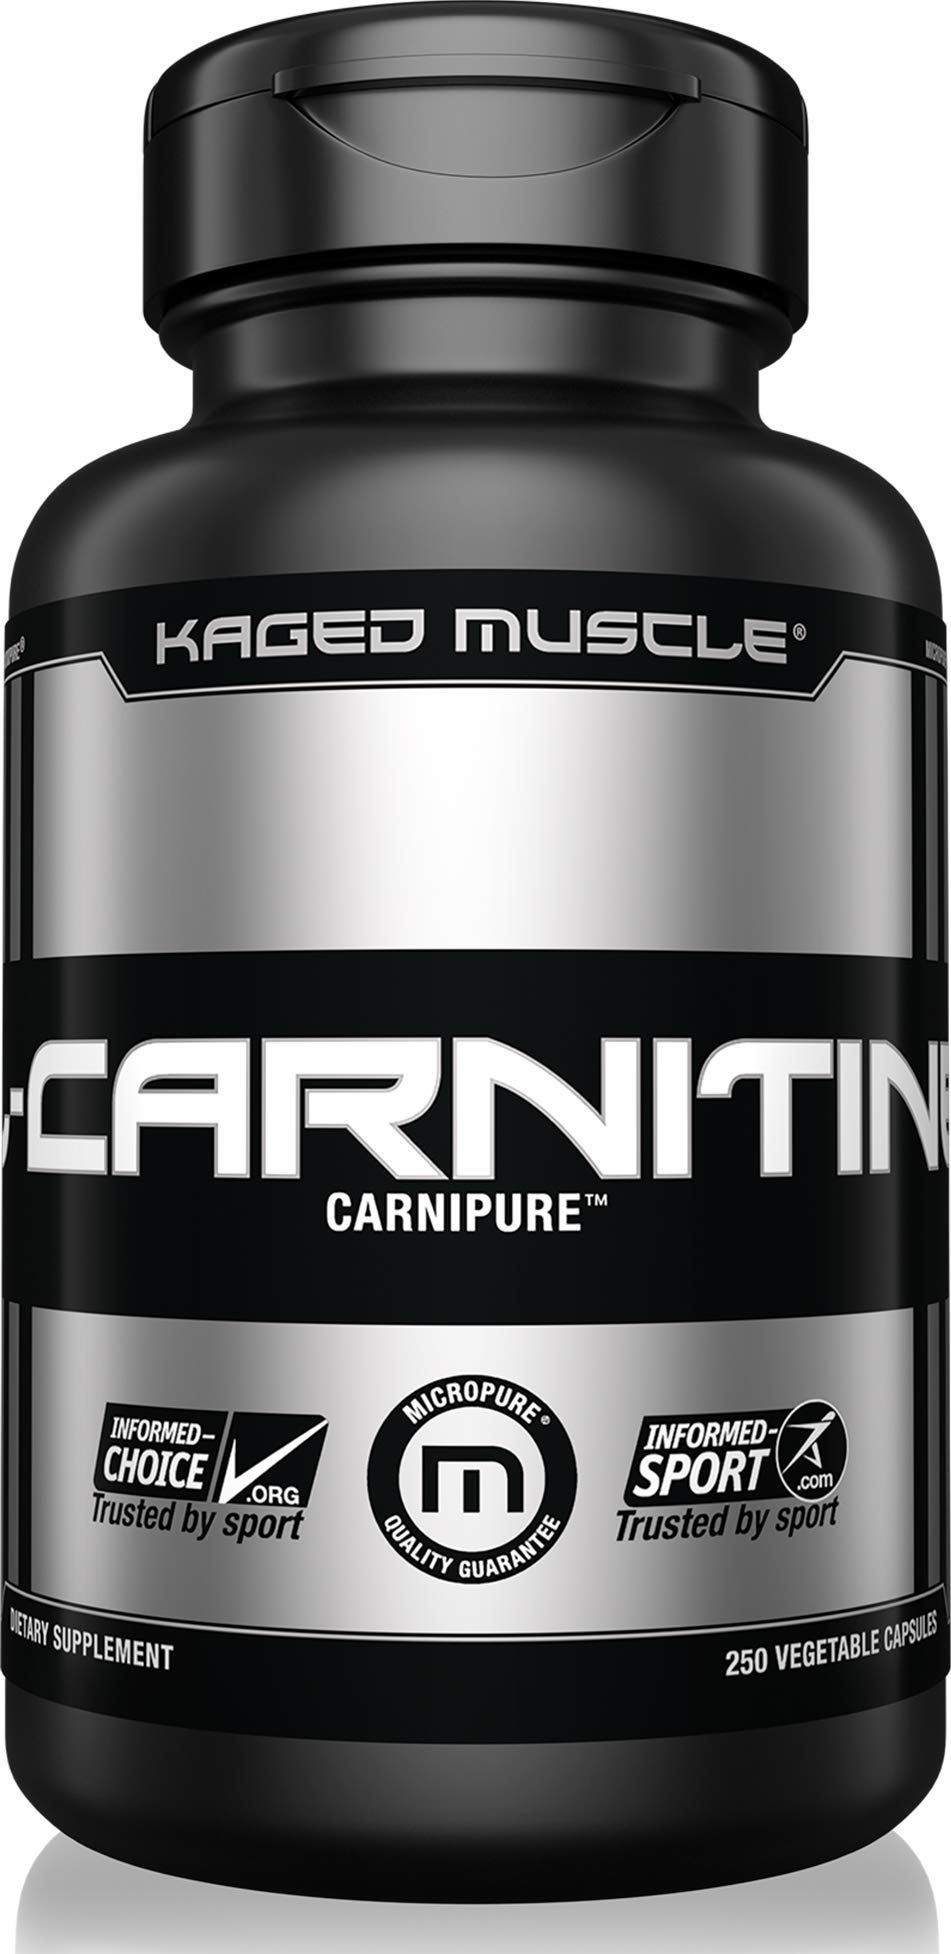 Kaged Muscle, Premium L-Carnitine 500 mg, Stimulant Free for Men & Women, Supports Recovery and reduction of post-workout markers of muscle stress and soreness, Carnitine, 250 Veggie Capsules by Kaged Muscle